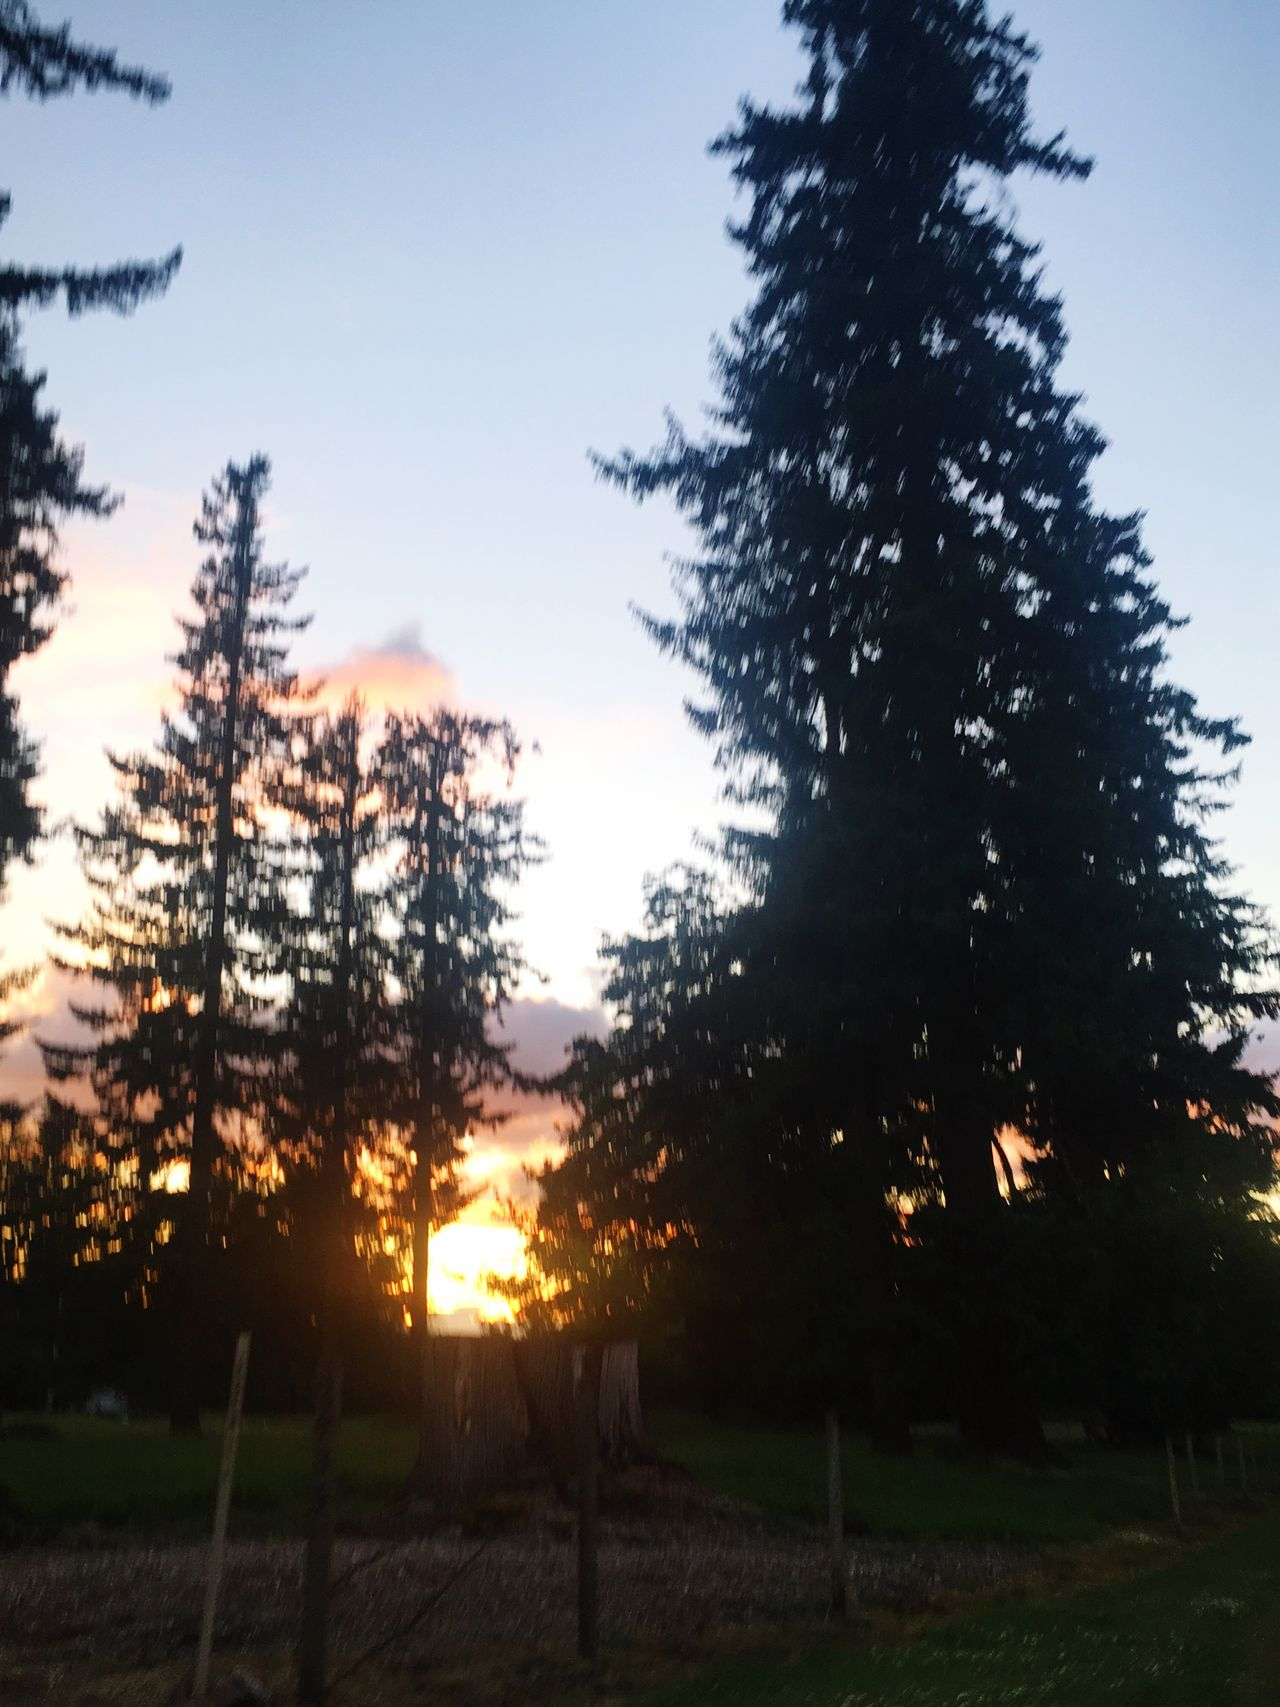 Tree Silhouette No People Nature Tranquility Beauty In Nature Tranquil Scene Sunset Landscape Scenics Sky Outdoors Day